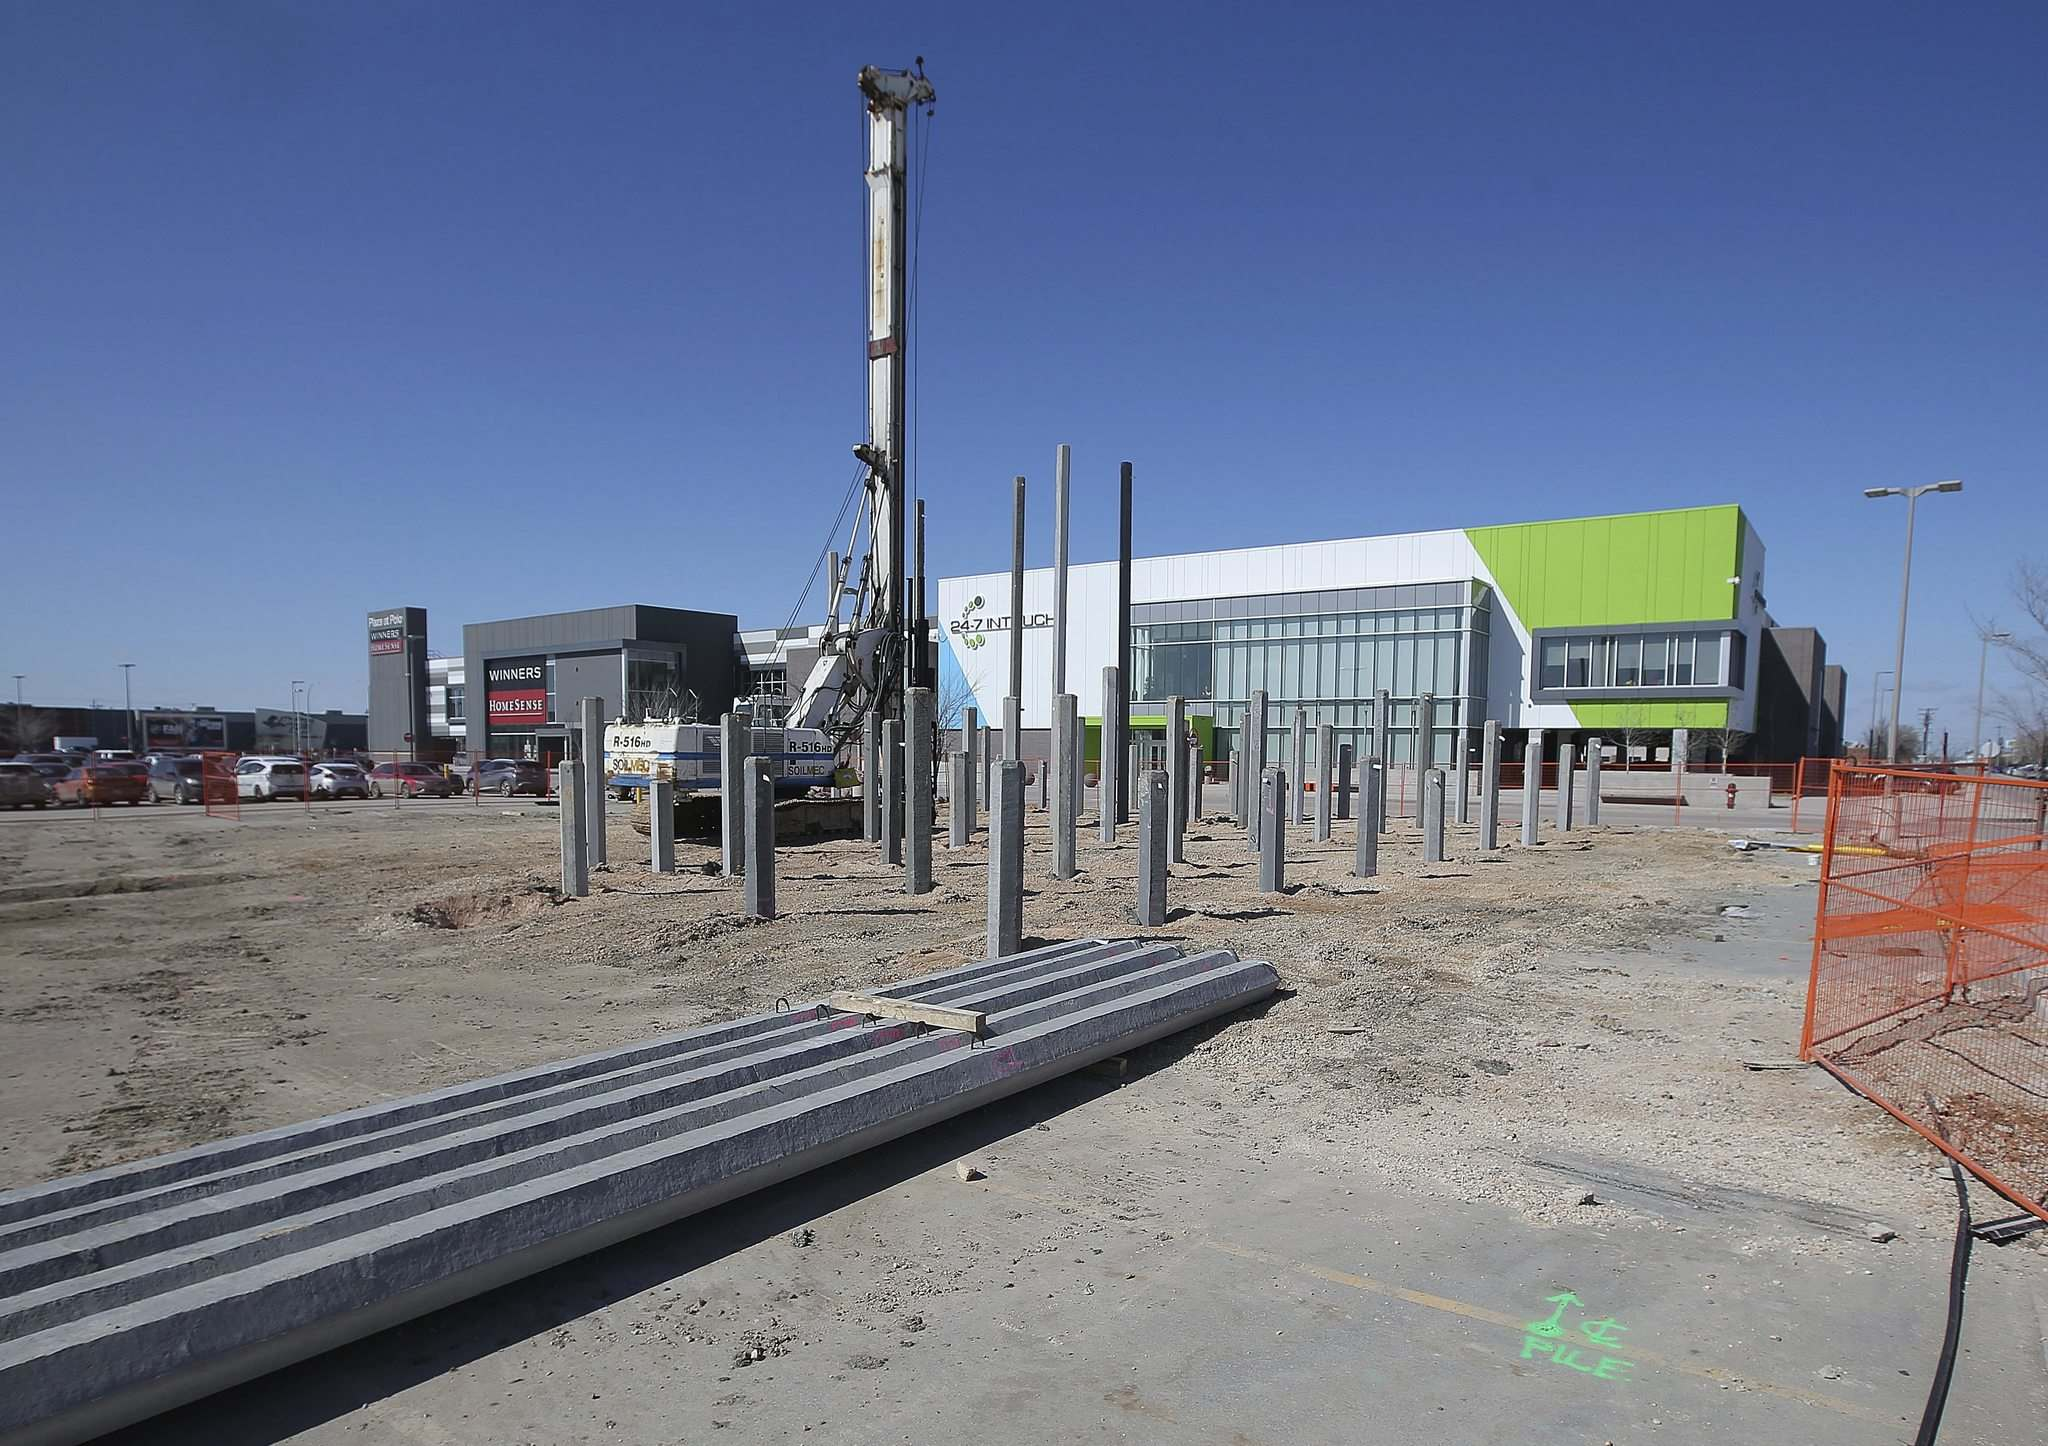 The building site for the proposed P.F. Chang's restaurant, south of 24-7 Intouch Winnipeg and Winners/Homesense. (Jason Halstead / Winnipeg Free Press)